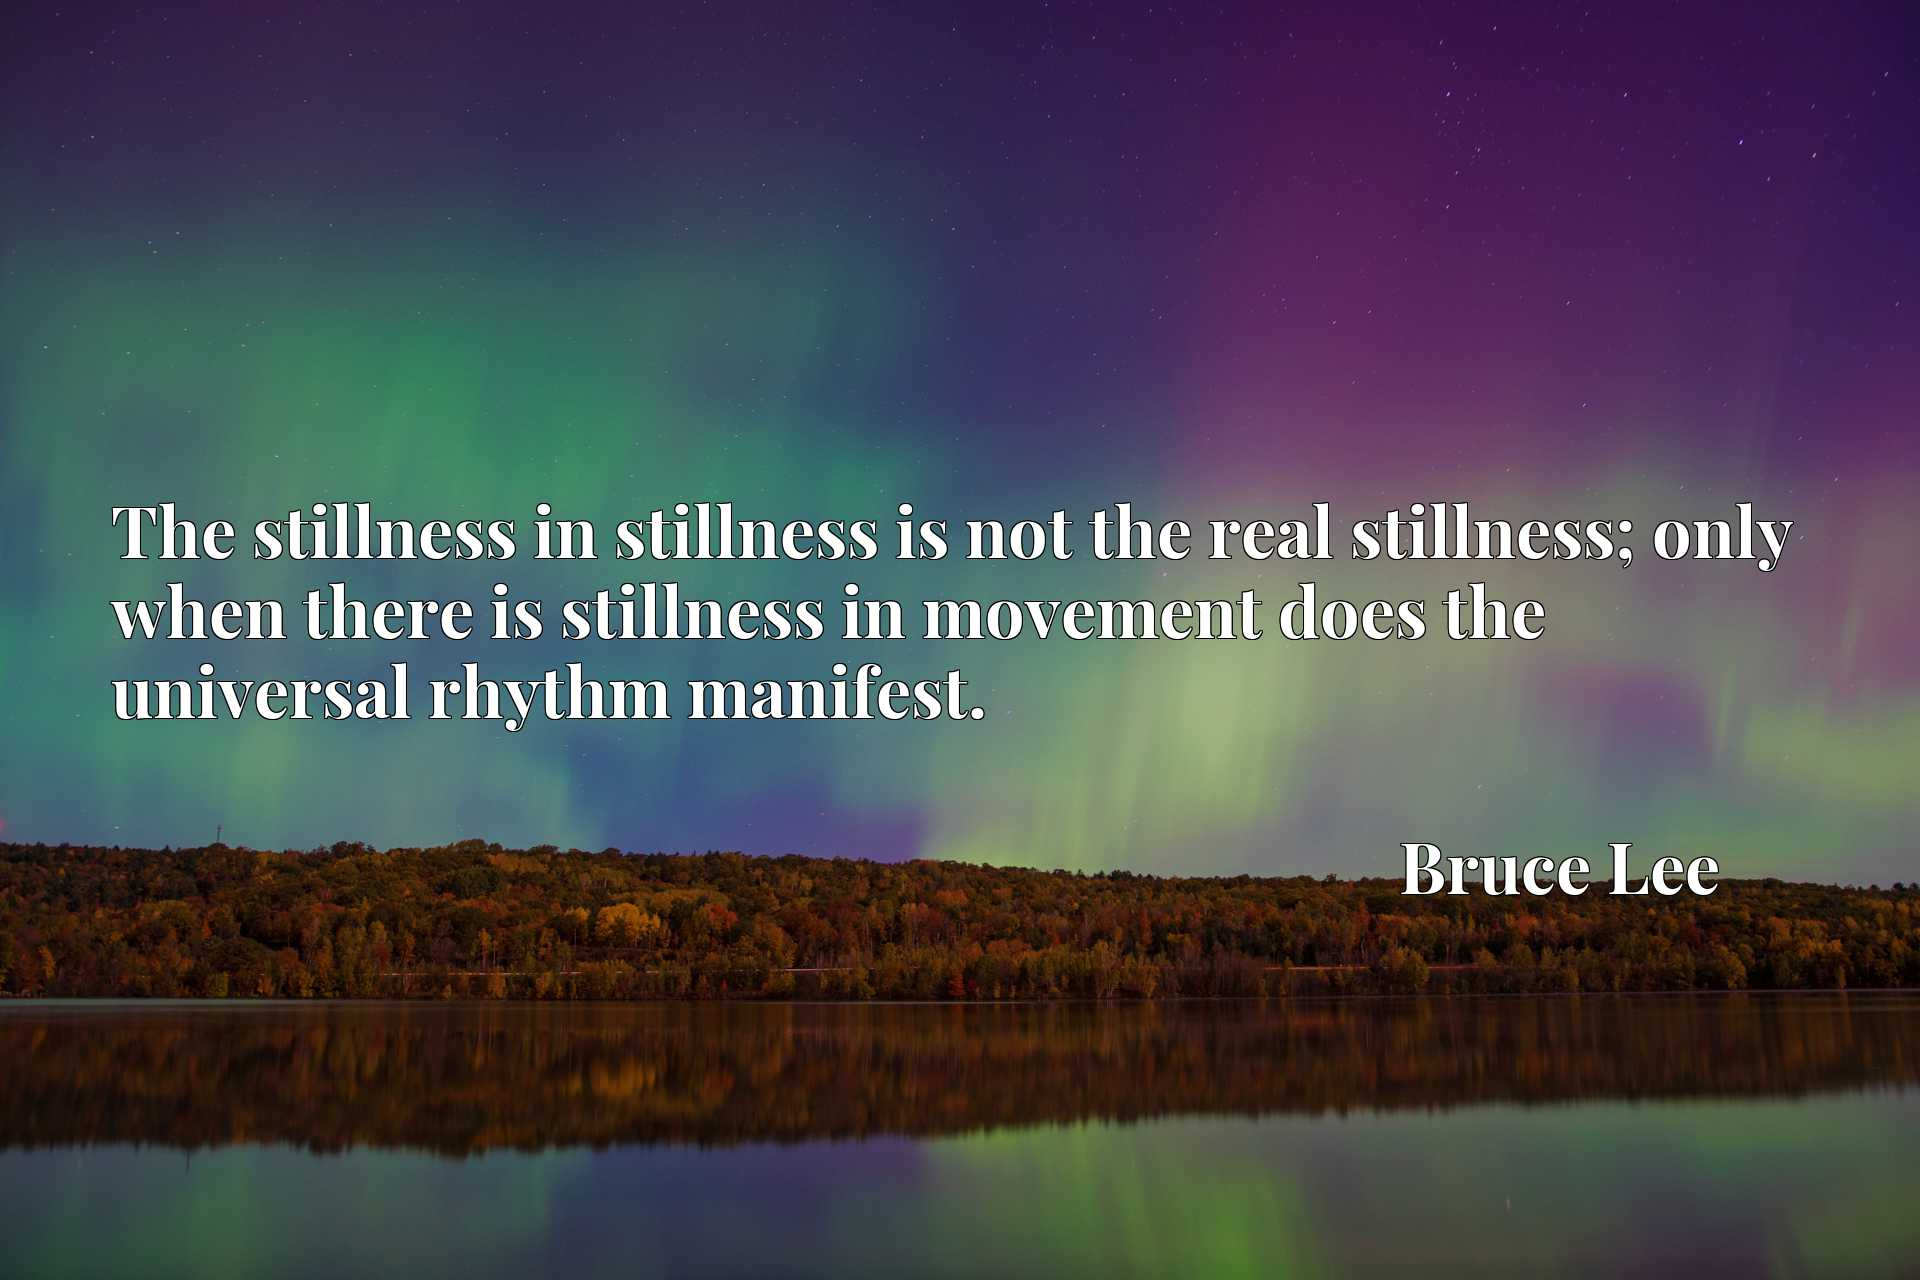 The stillness in stillness is not the real stillness; only when there is stillness in movement does the universal rhythm manifest.